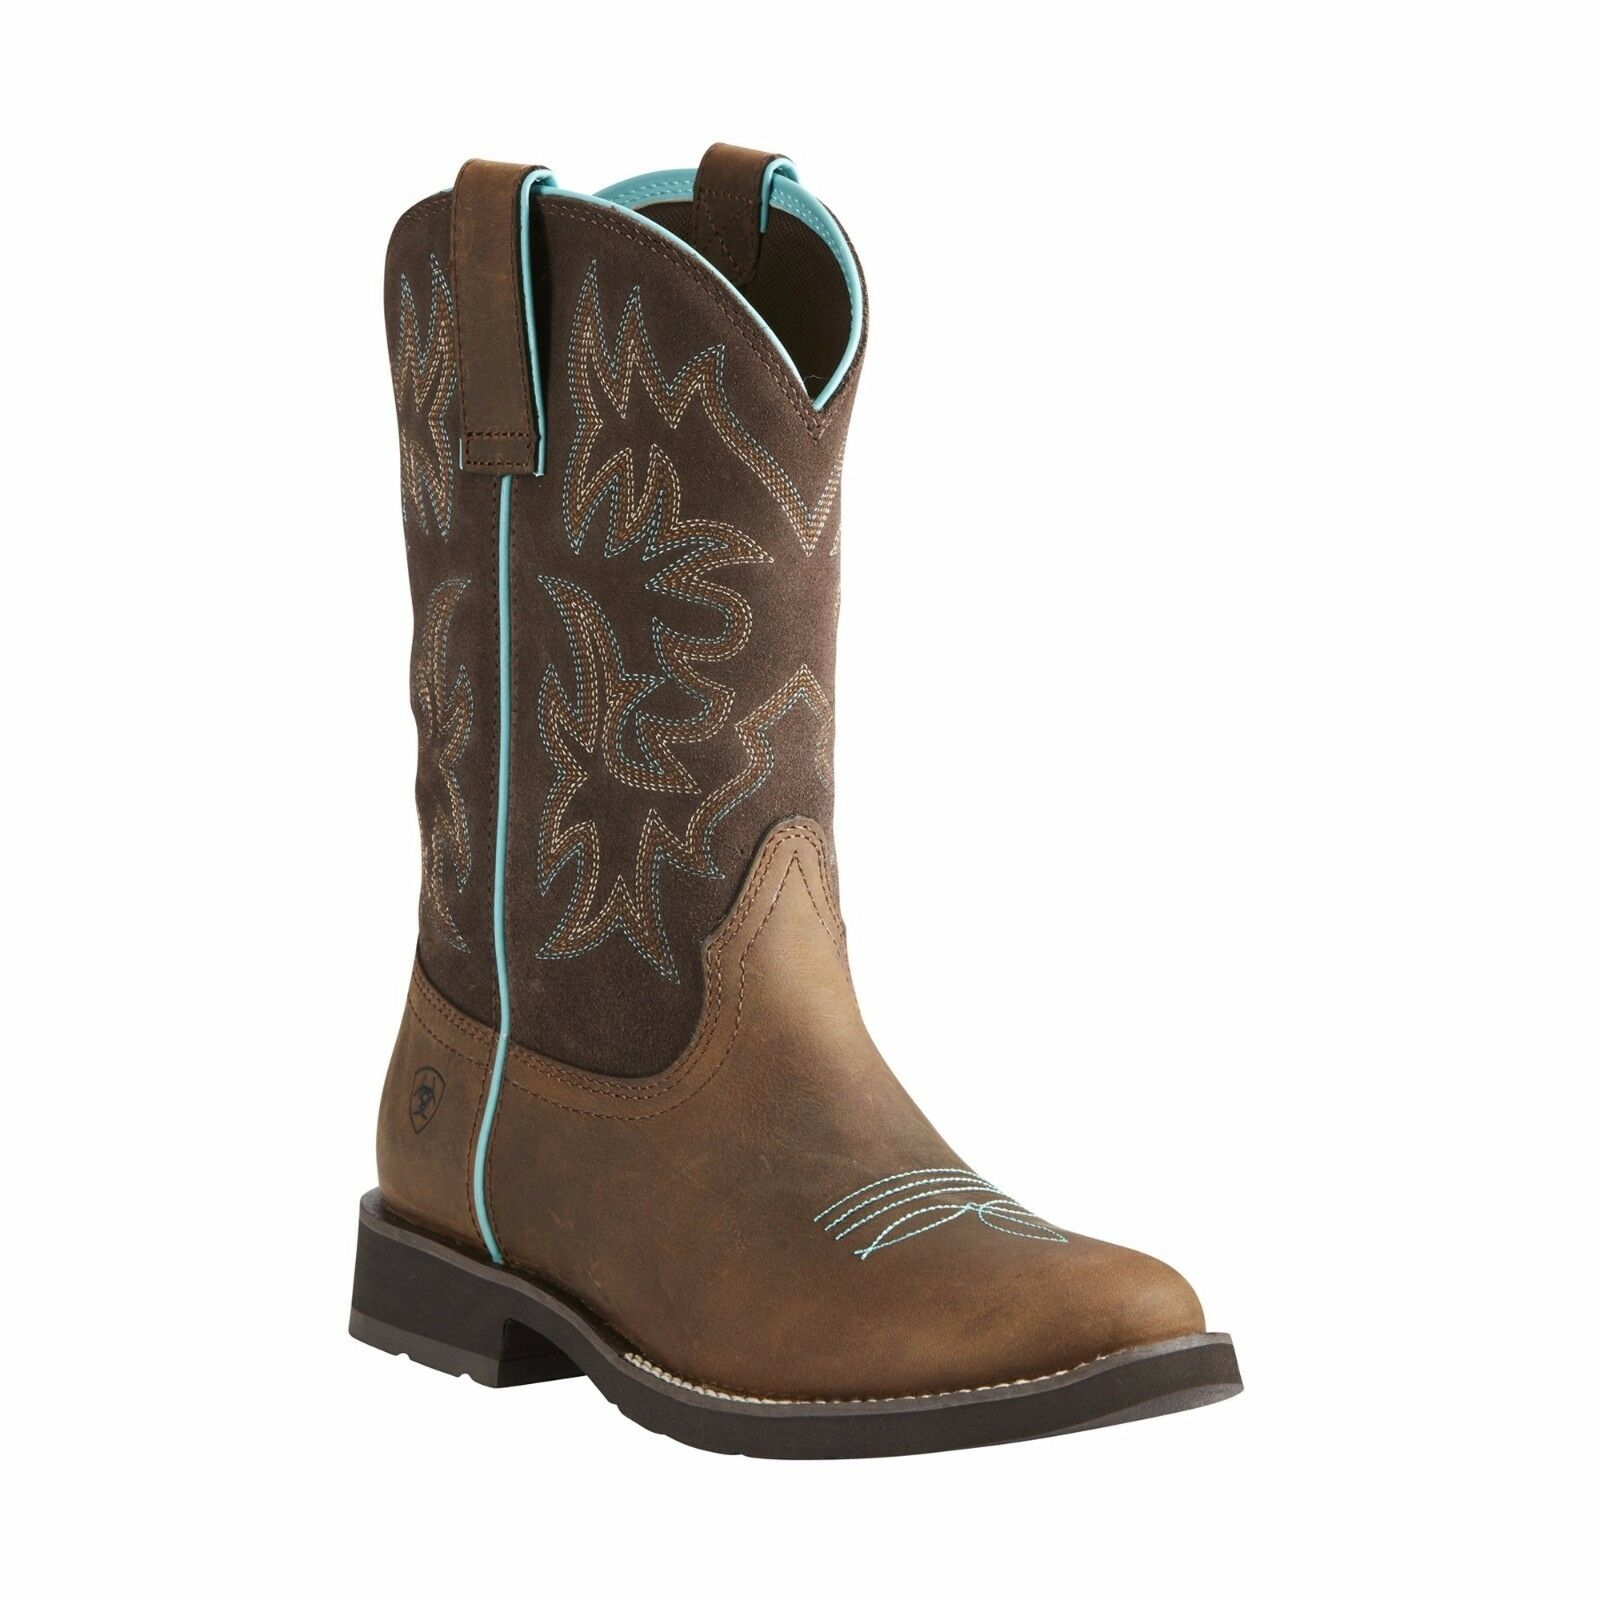 Ariat Ladies Depurpleh Distressed Brown Boot 10021457